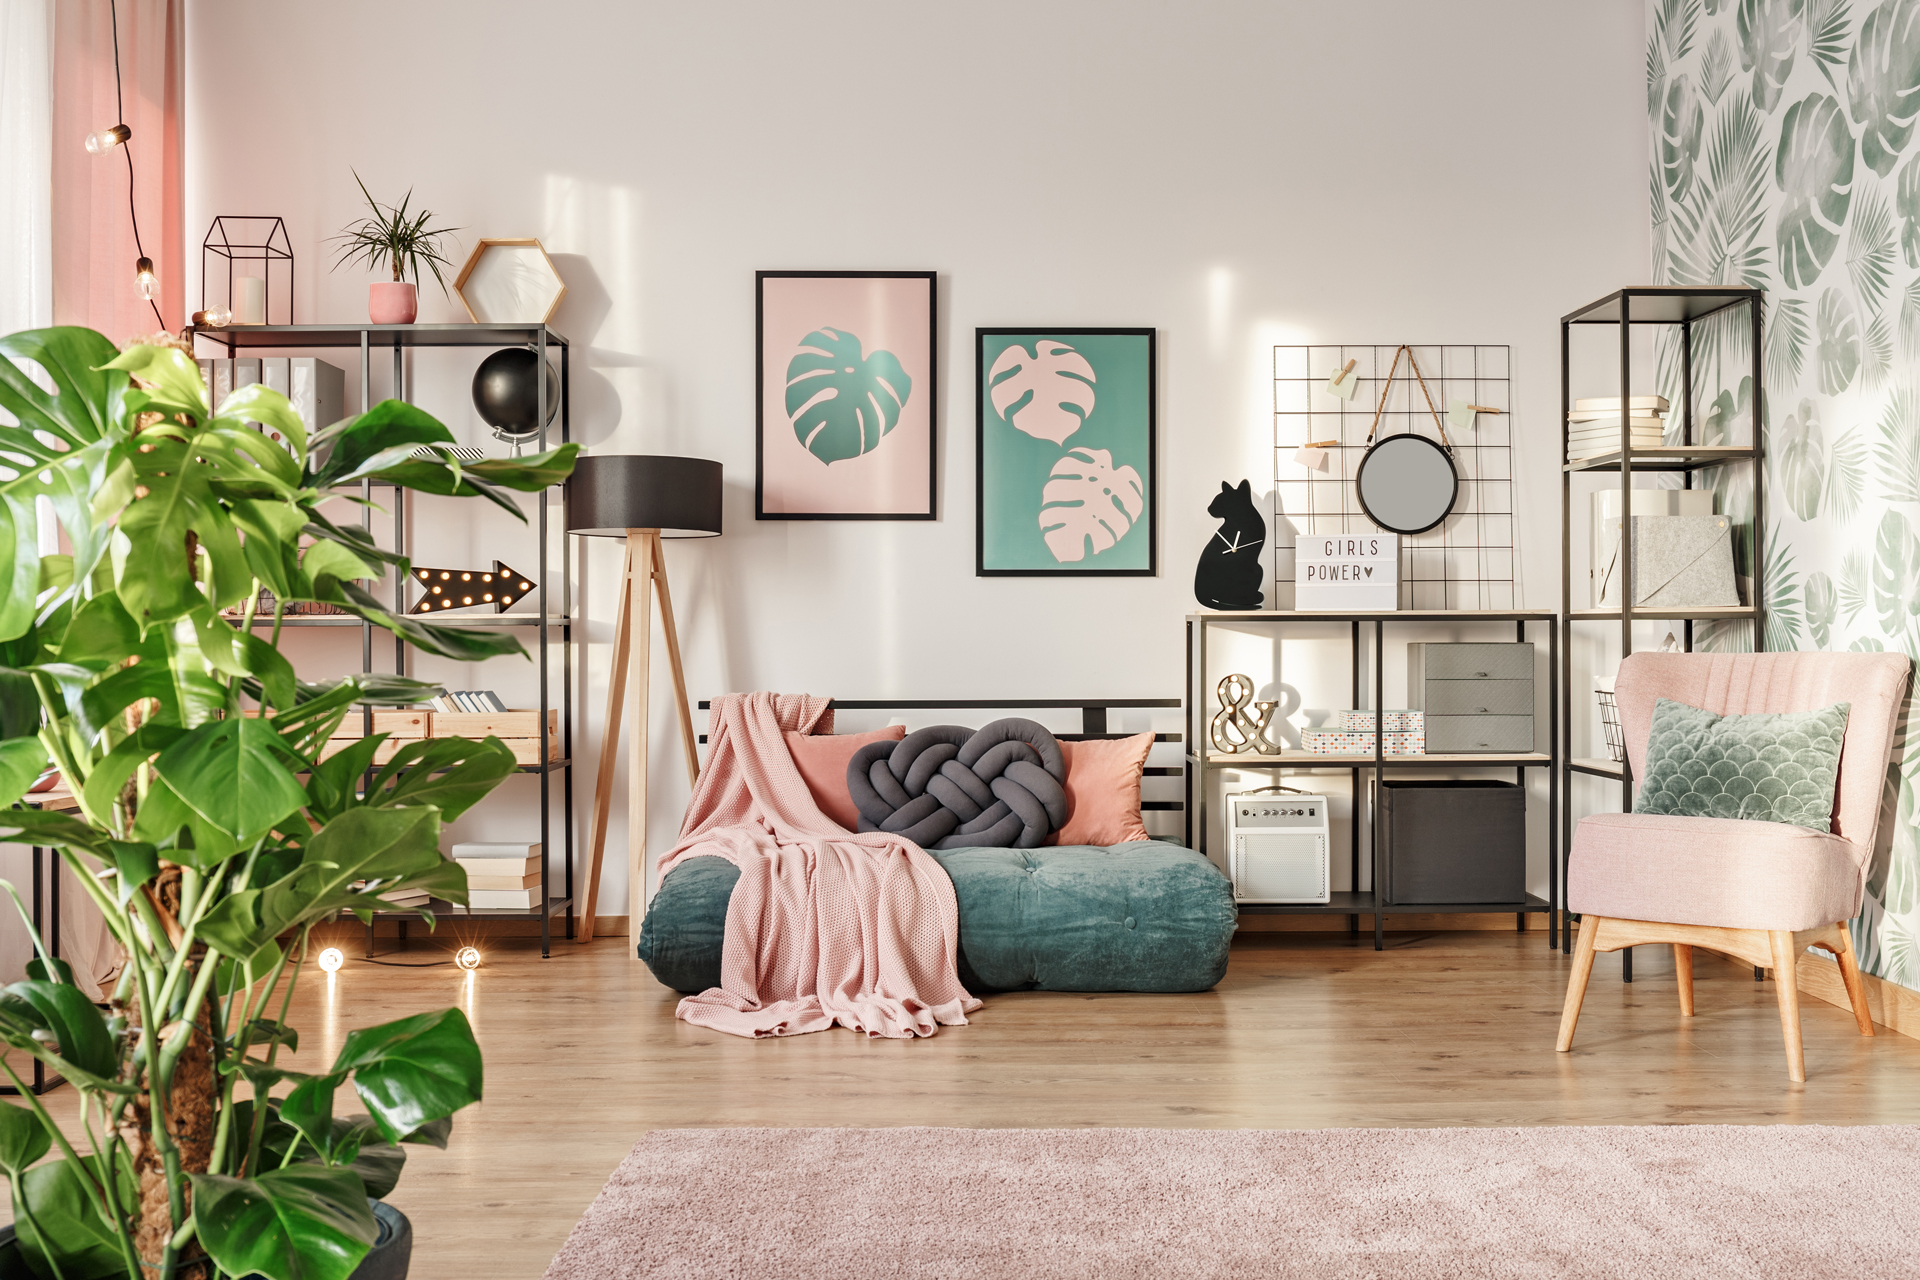 couleur pastel focus sur cette tendance d co 2018 blog schmidt. Black Bedroom Furniture Sets. Home Design Ideas